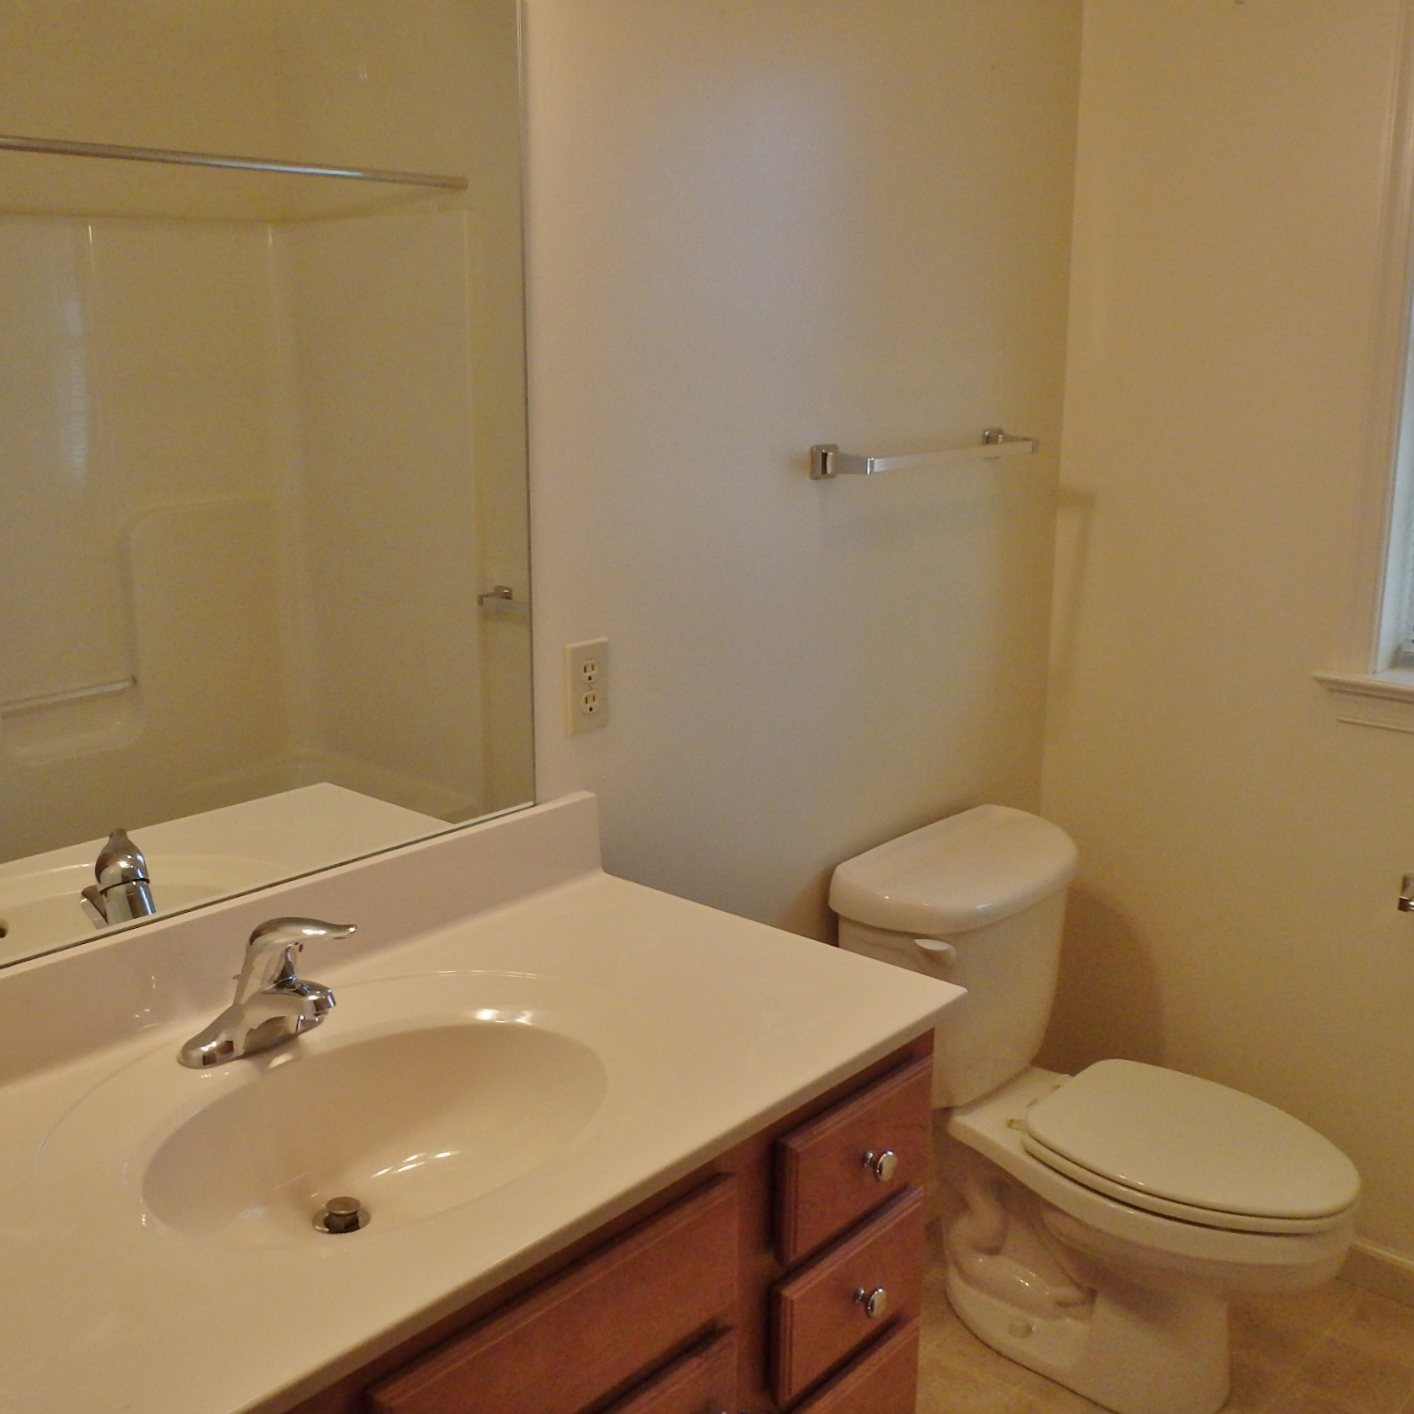 Bathroom photo of the 3-bedroom house for rent at 112 McKivison Court.